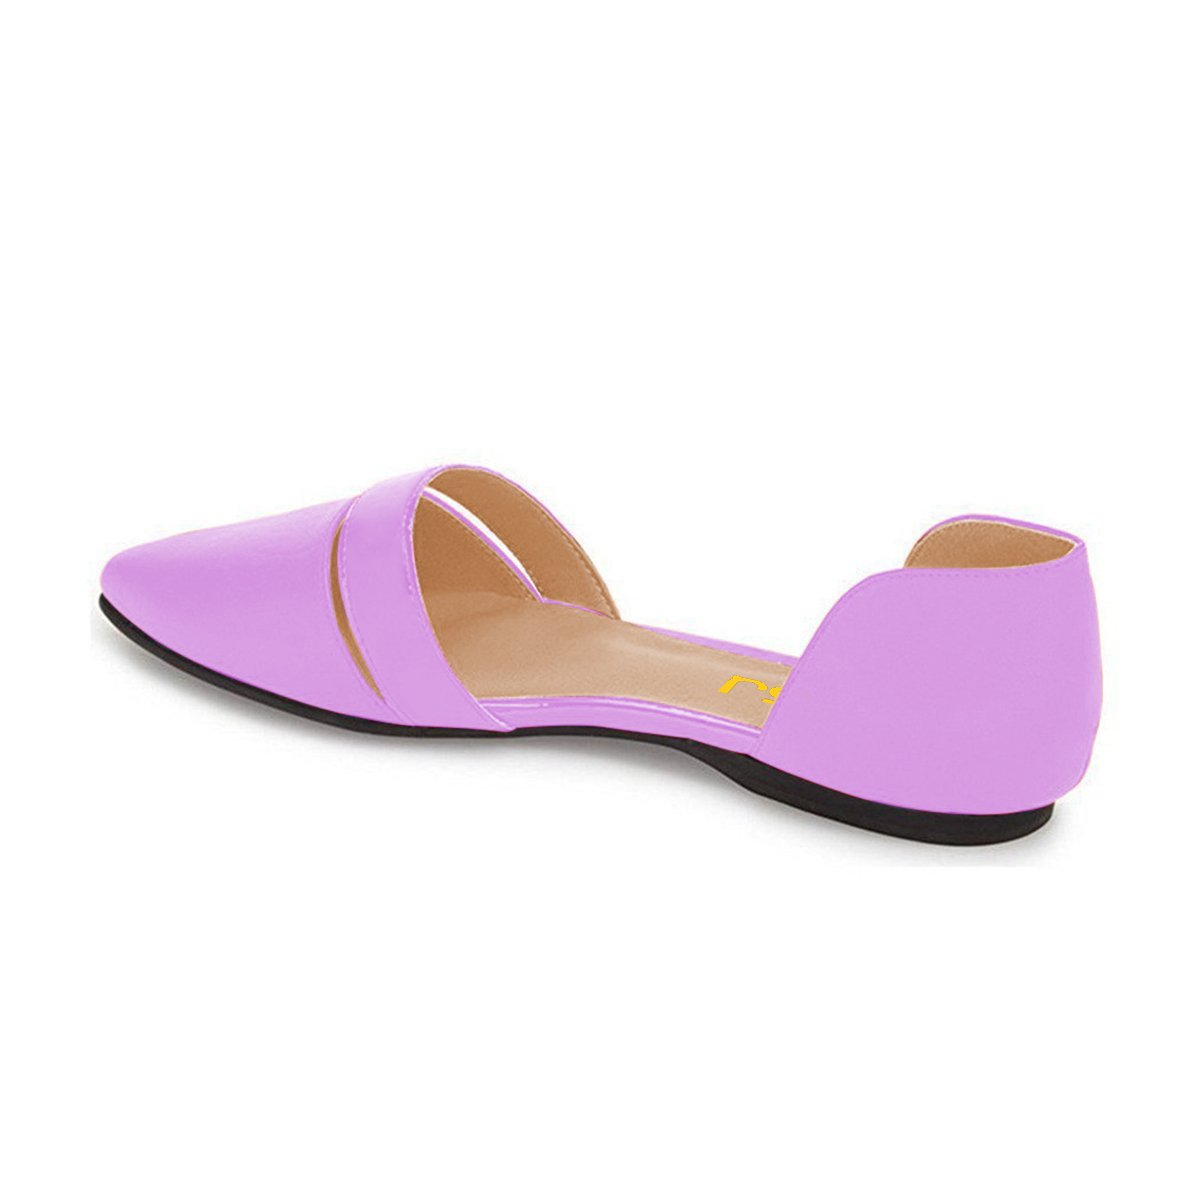 FSJ Women Cute D'Orsay Ballet Toe Flats for Comfort Pointed Toe Ballet Low Heels Dress Shoes Size 4-15 US B06Y4QM9DB 6 B(M) US|Purple 724918